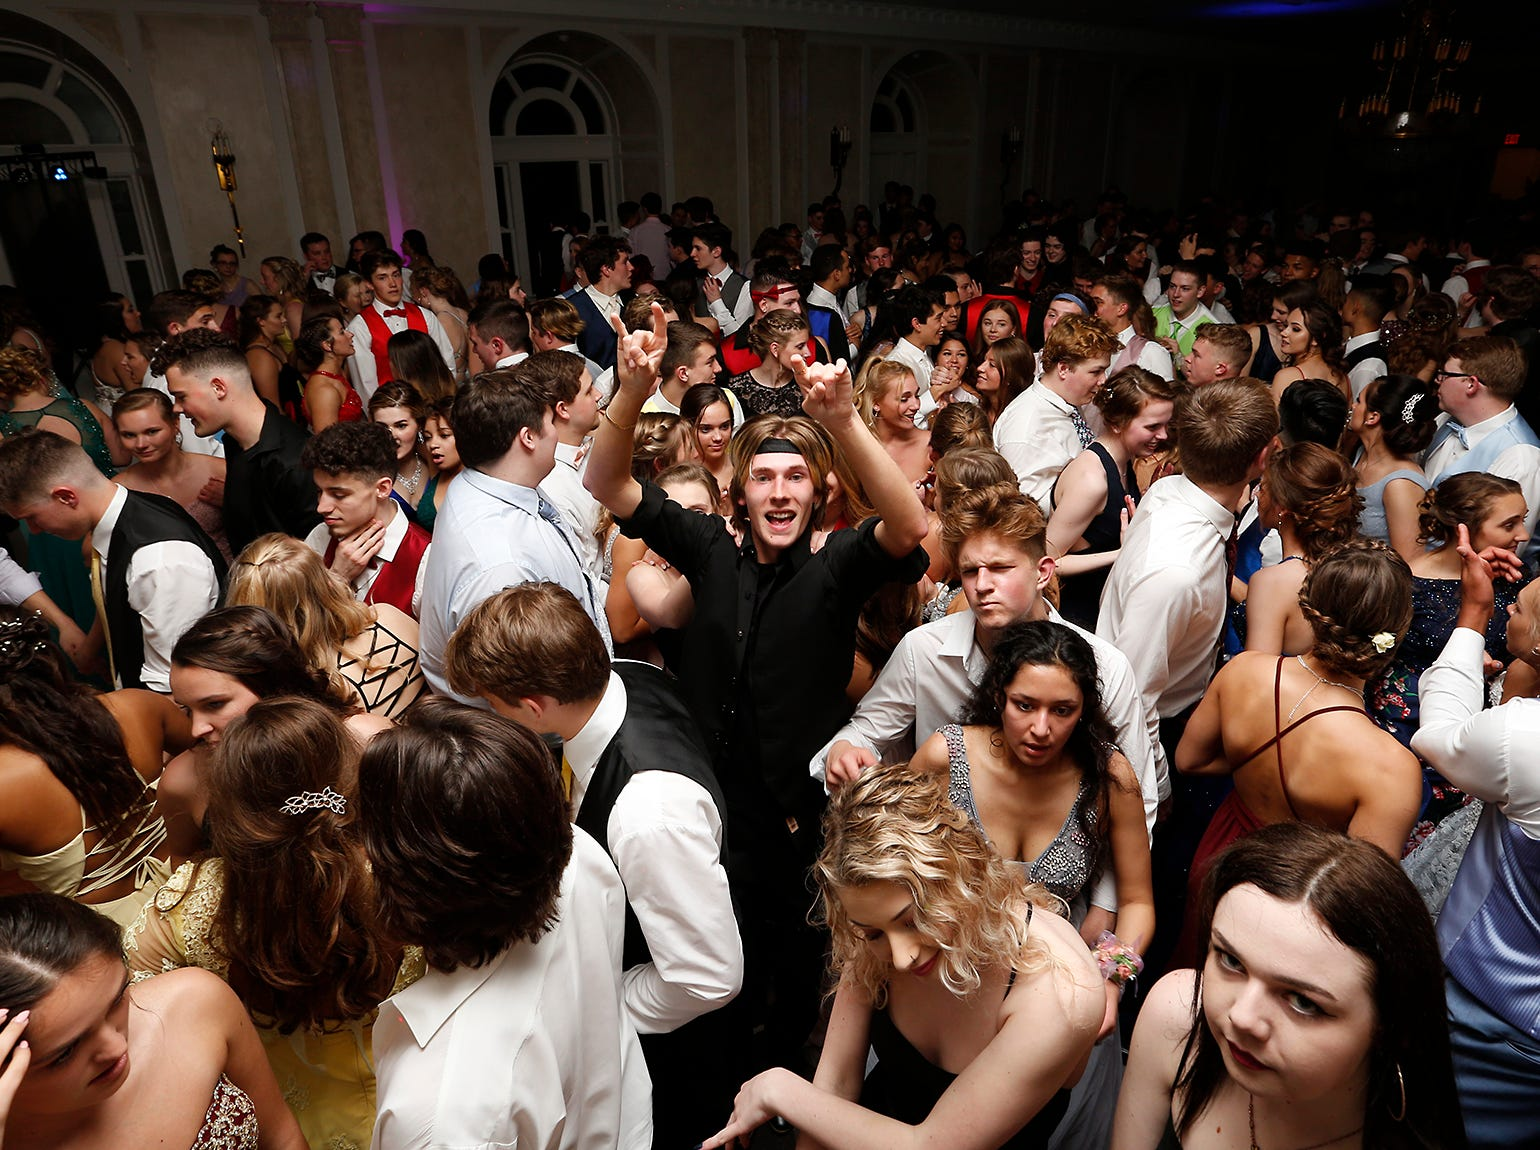 Fond du Lac High School held it's prom Saturday, May 11, 2019 at the Retlaw Hotel ballroom in Fond du Lac, Wis. Doug Raflik/USA TODAY NETWORK-Wisconsin